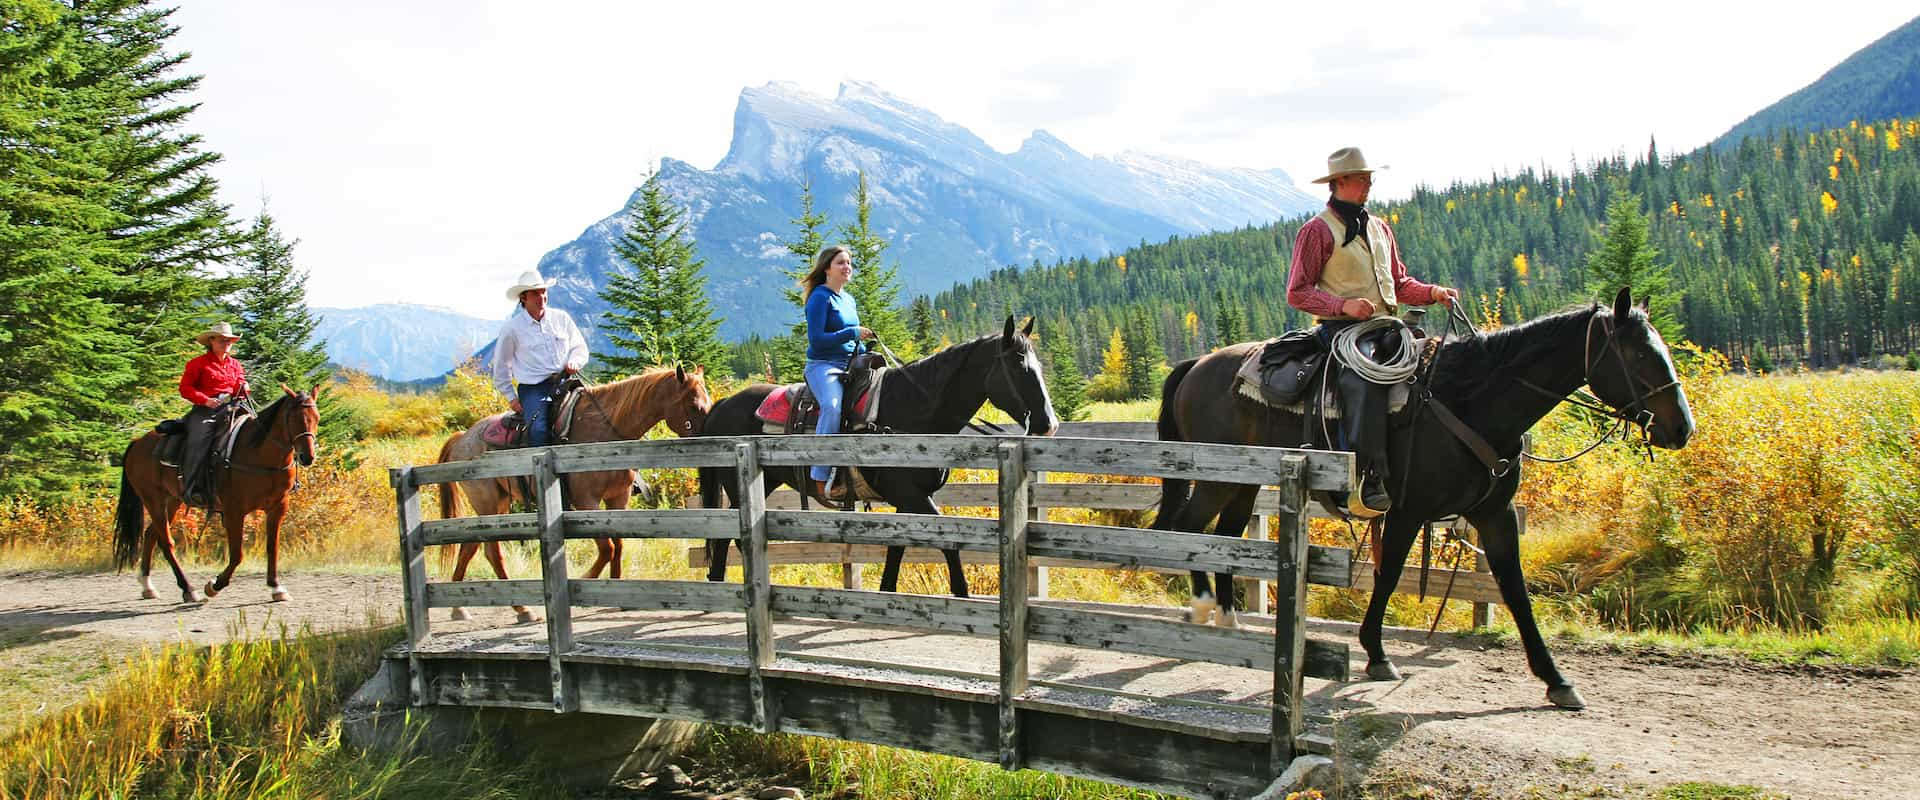 Banff horseback rides with Discover Banff Tours in the Canadian Rockies